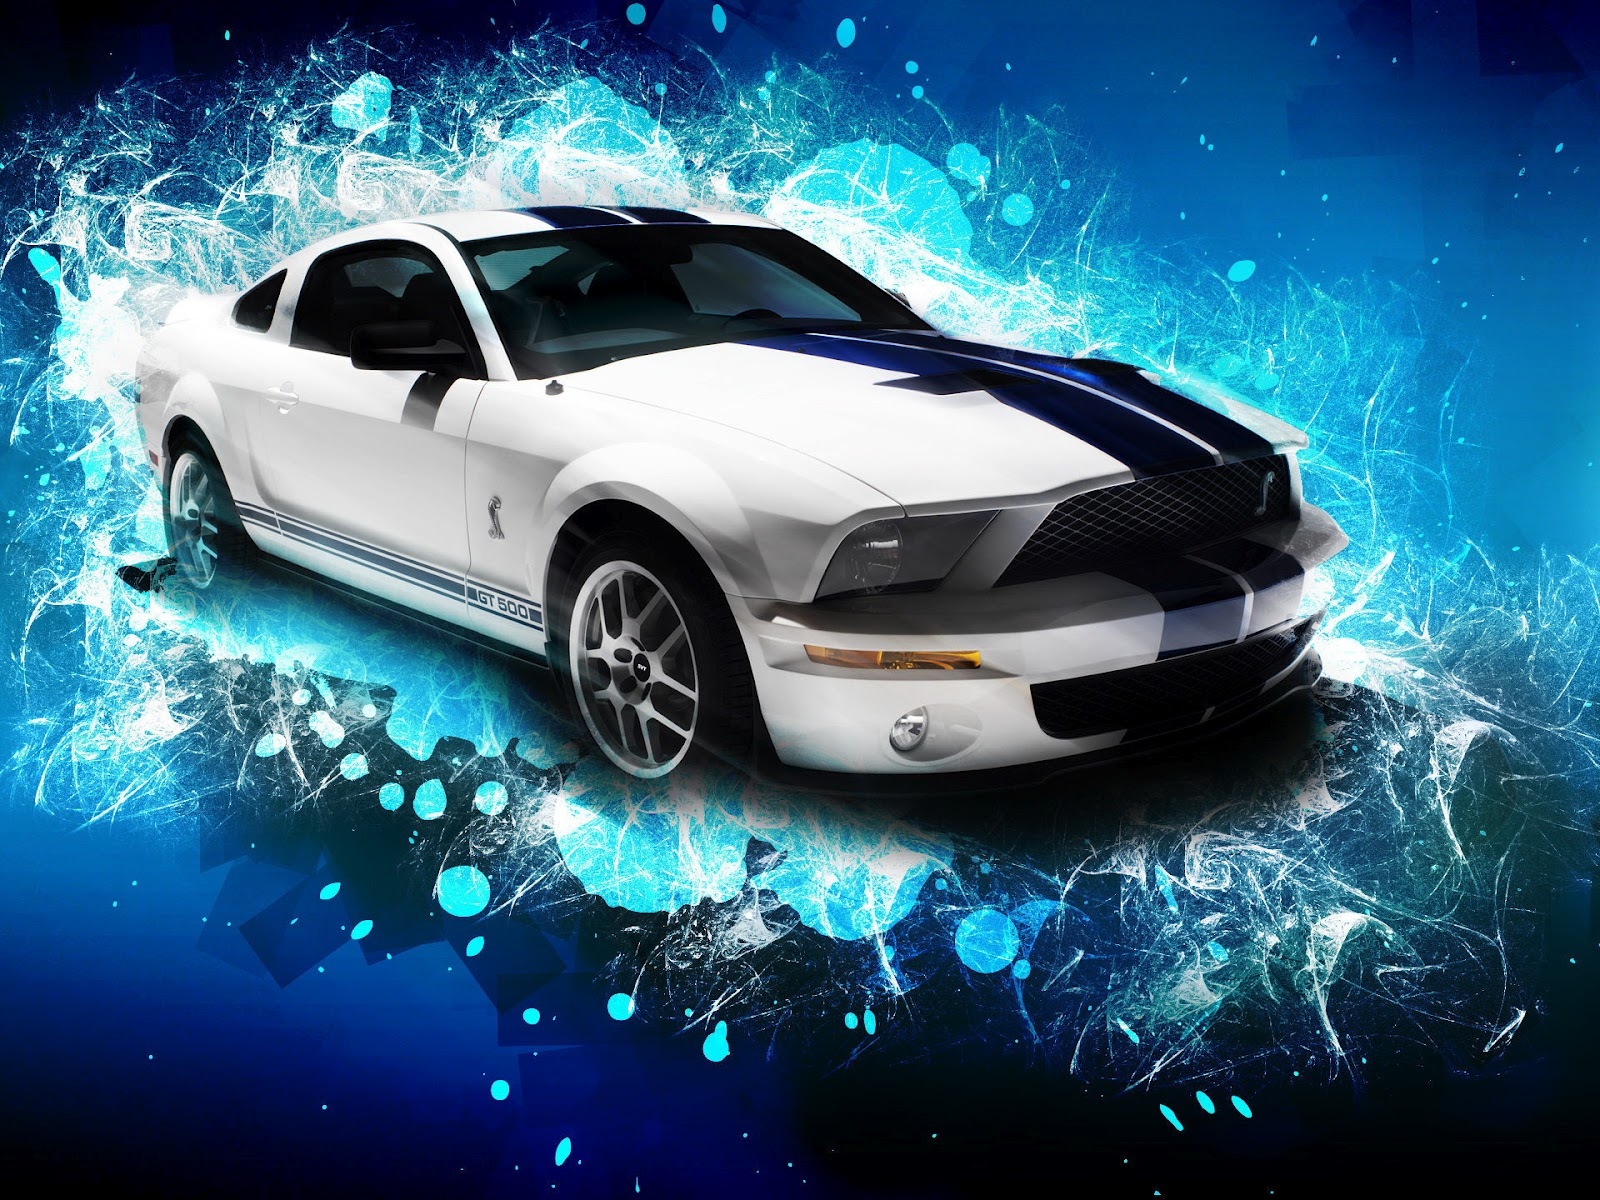 1230carswallpapers: Blue Mustang Gt Wallpaper